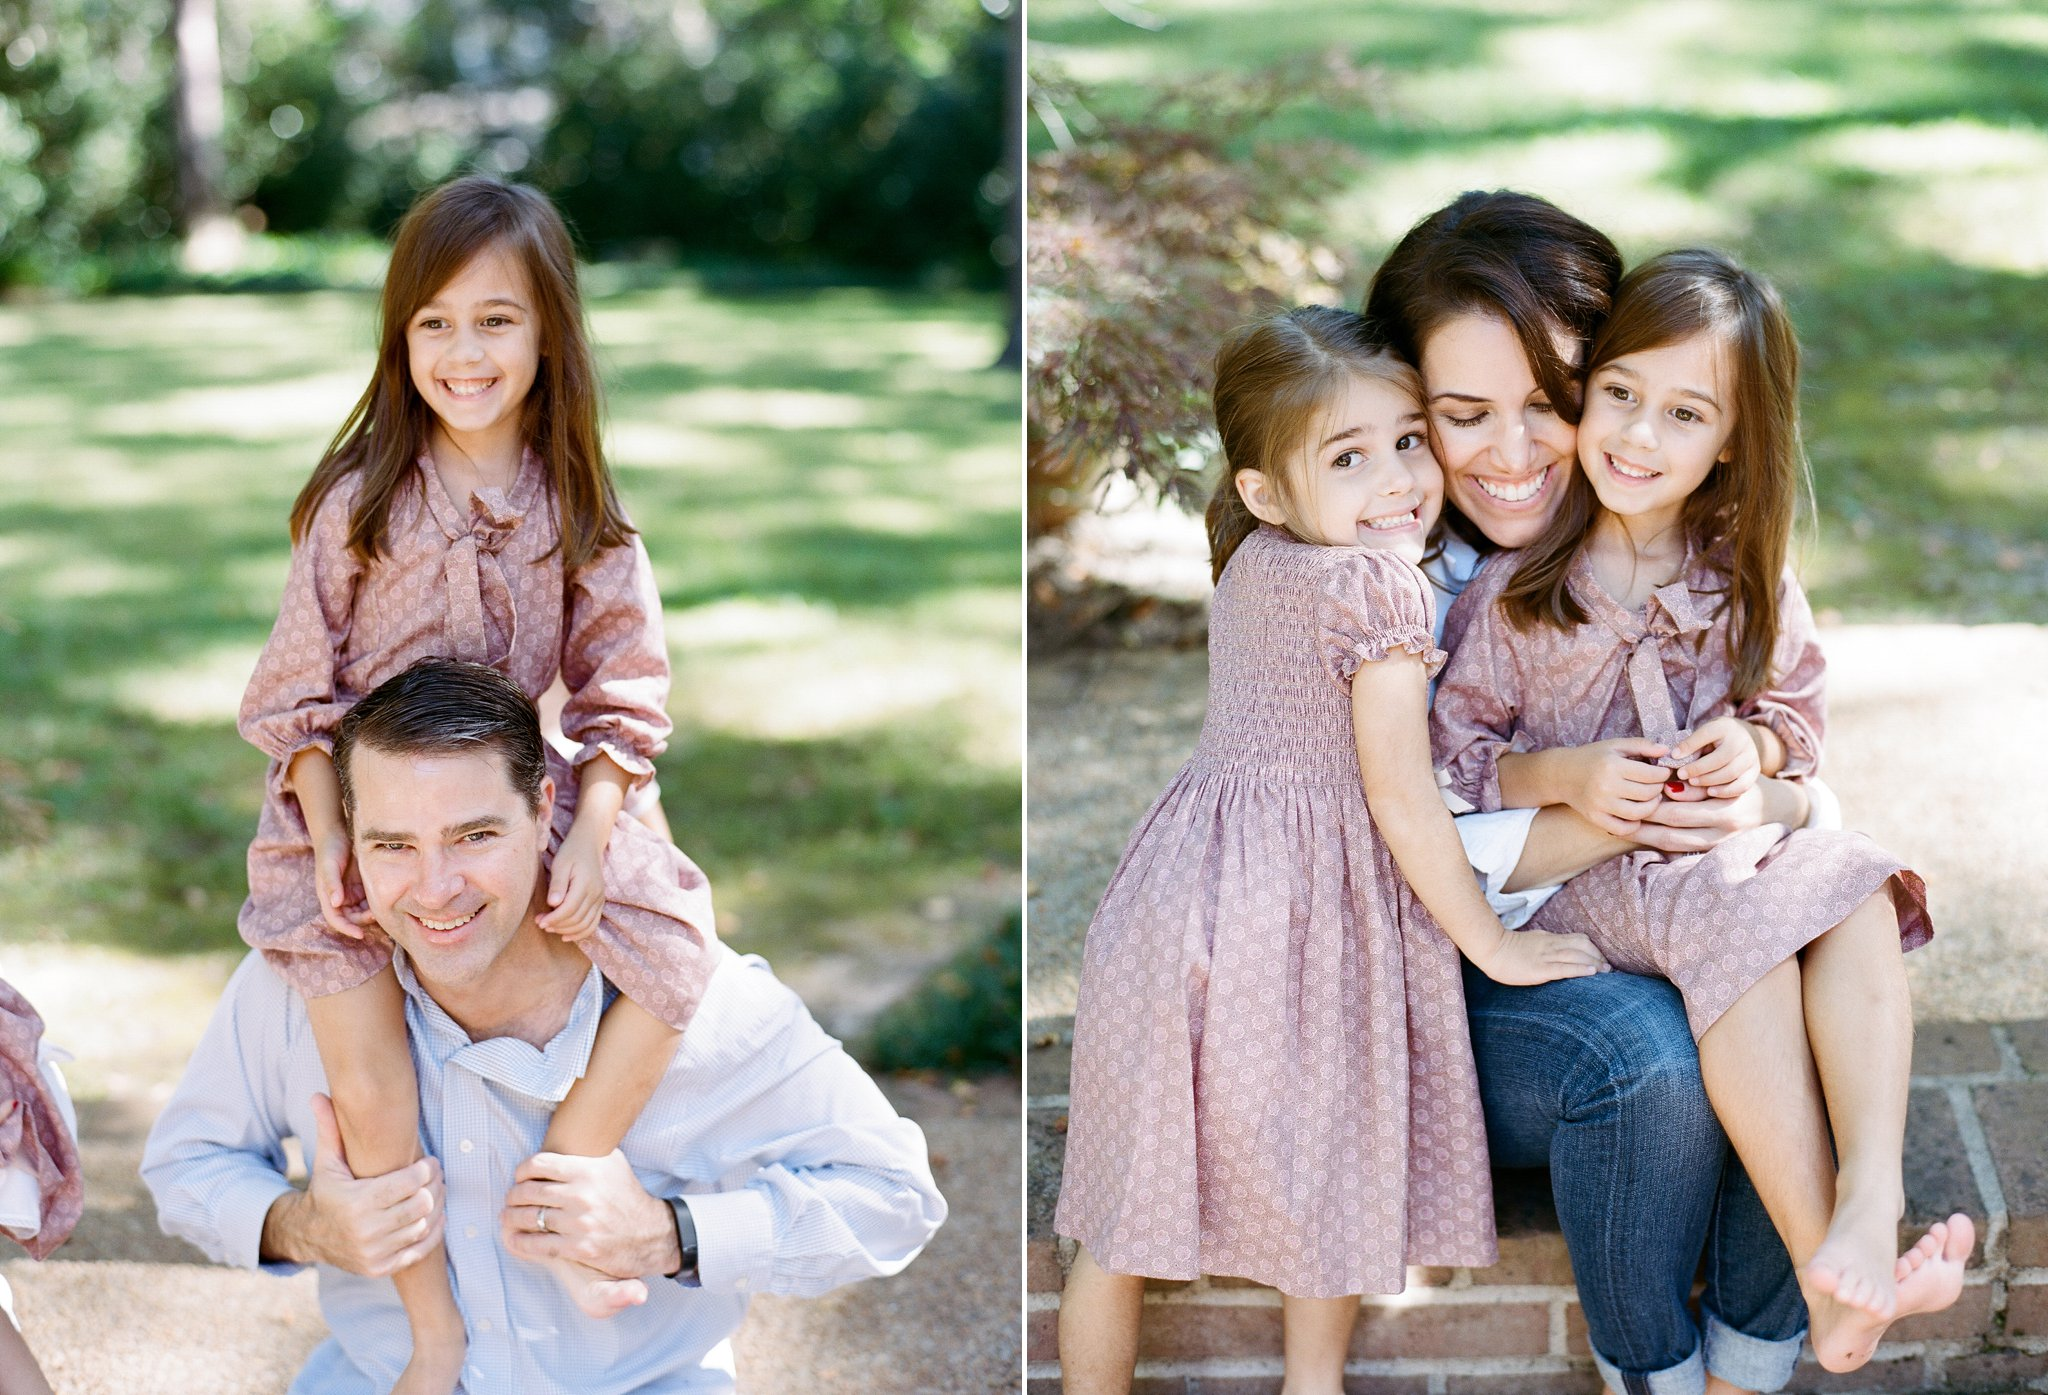 tallahassee family photographer shannon griffin photography_0048.jpg